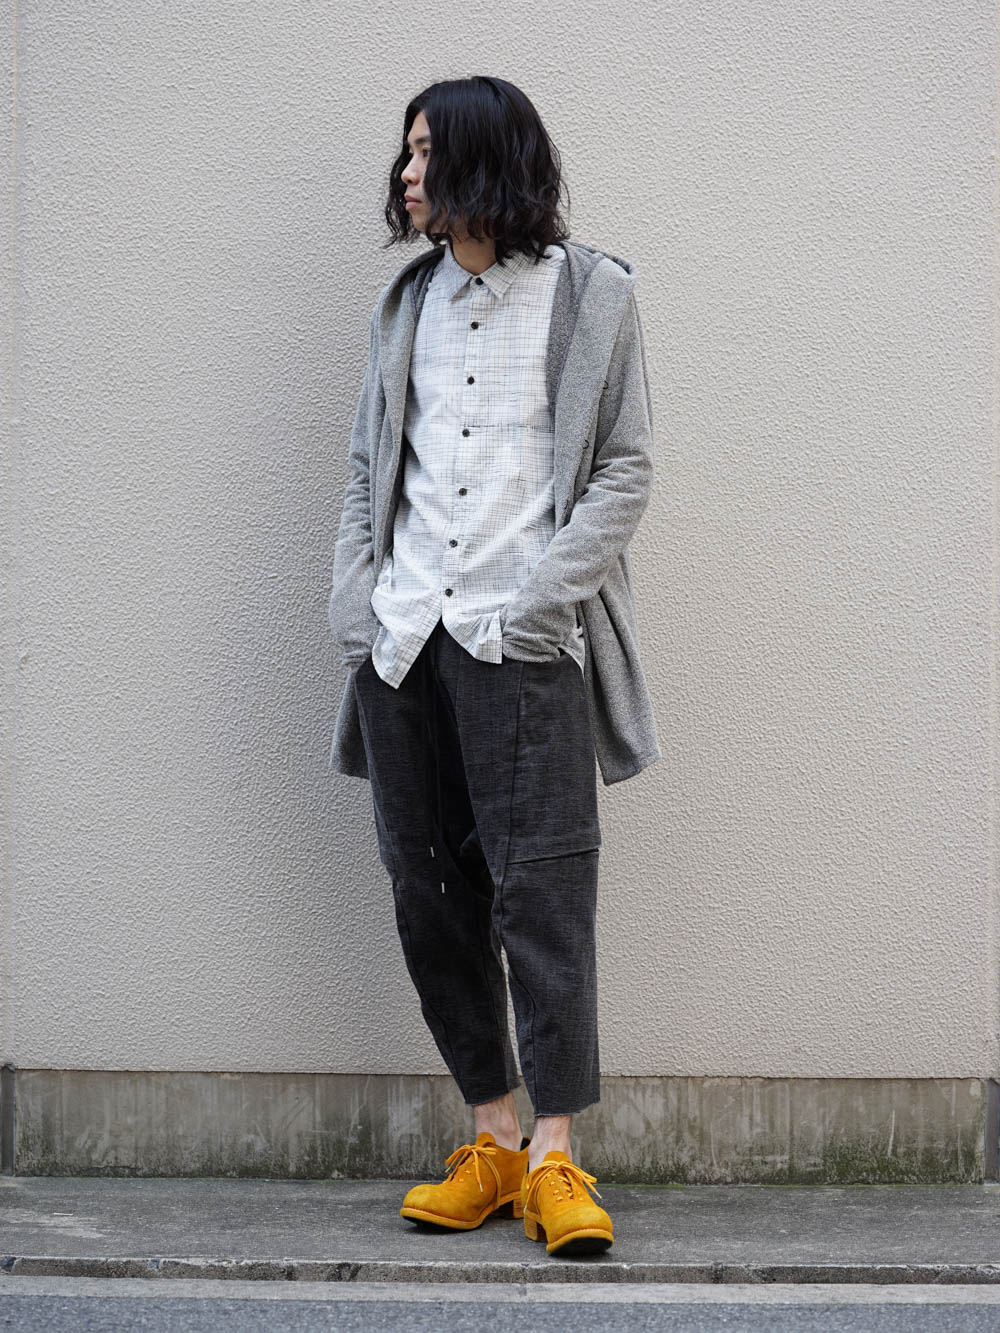 Gray×Yellow Color Style 01